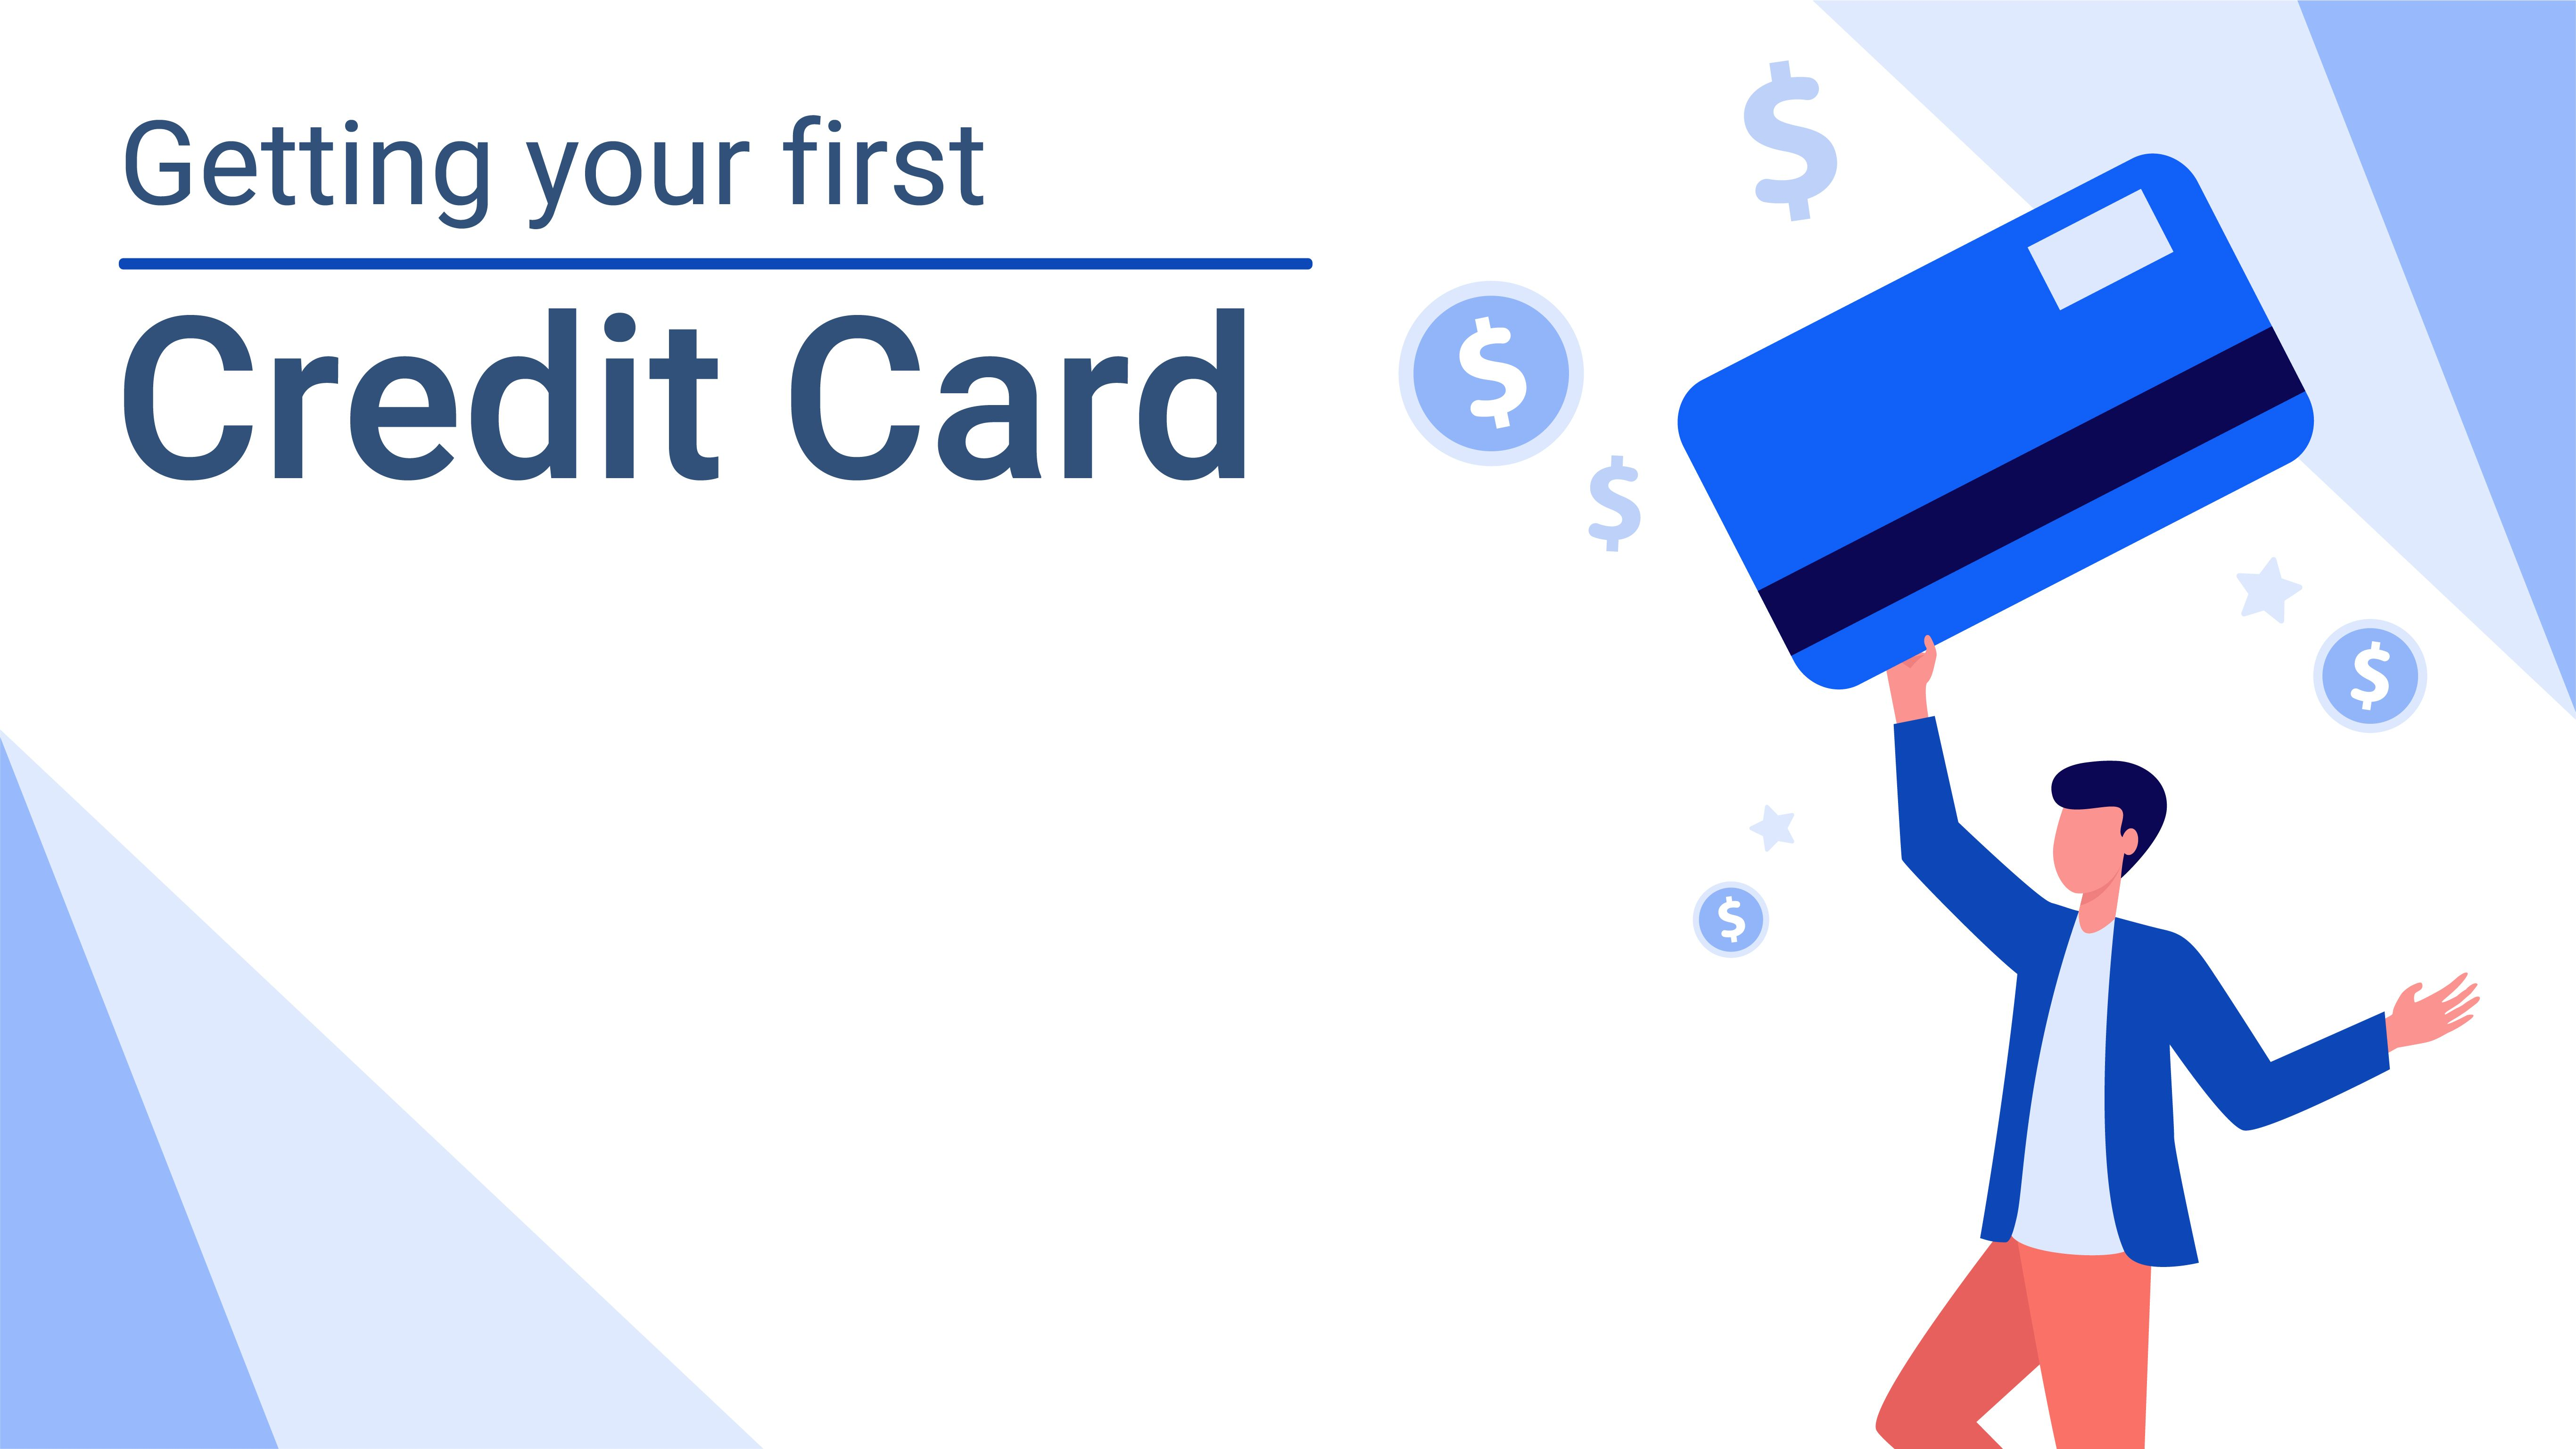 How to Get a Credit Card in Canada